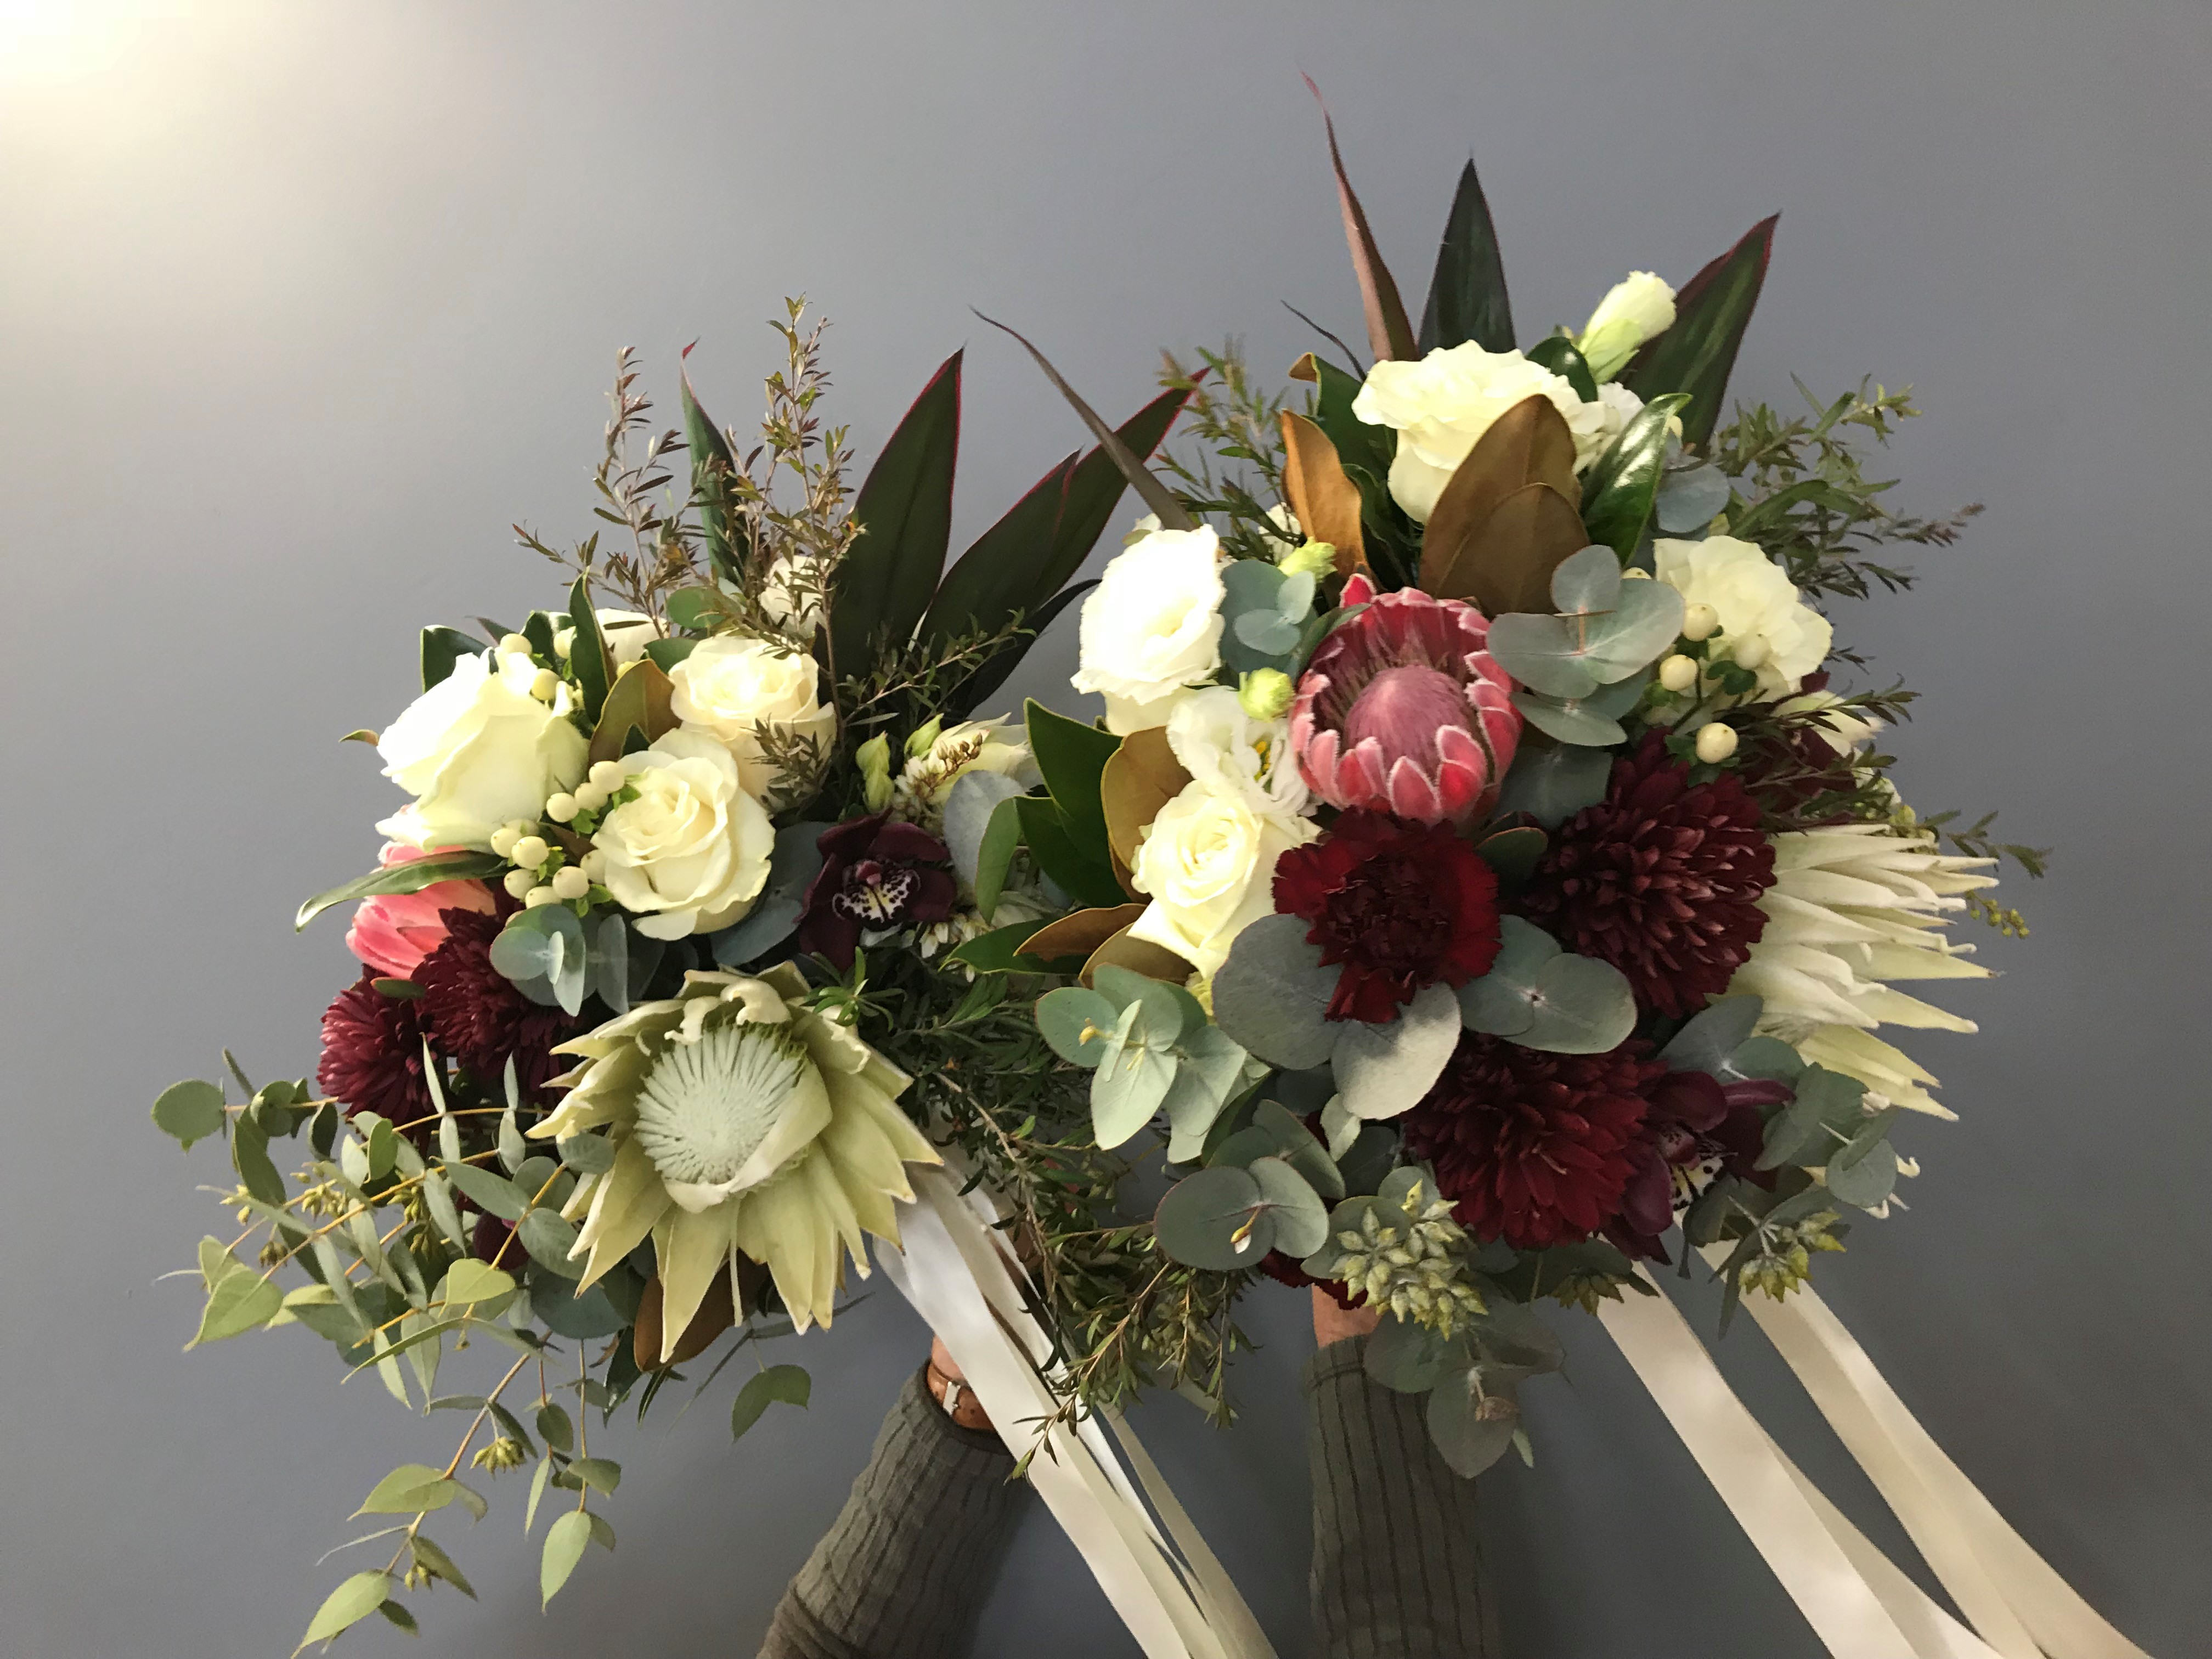 wedding bouquet, tamworth wedding, bridal bouquet, burgundy bouquet, tamworth weddings, tamworth florist, florist tamworth, tamworth wedding florist, boho bouquet, bridesmaid bouquet